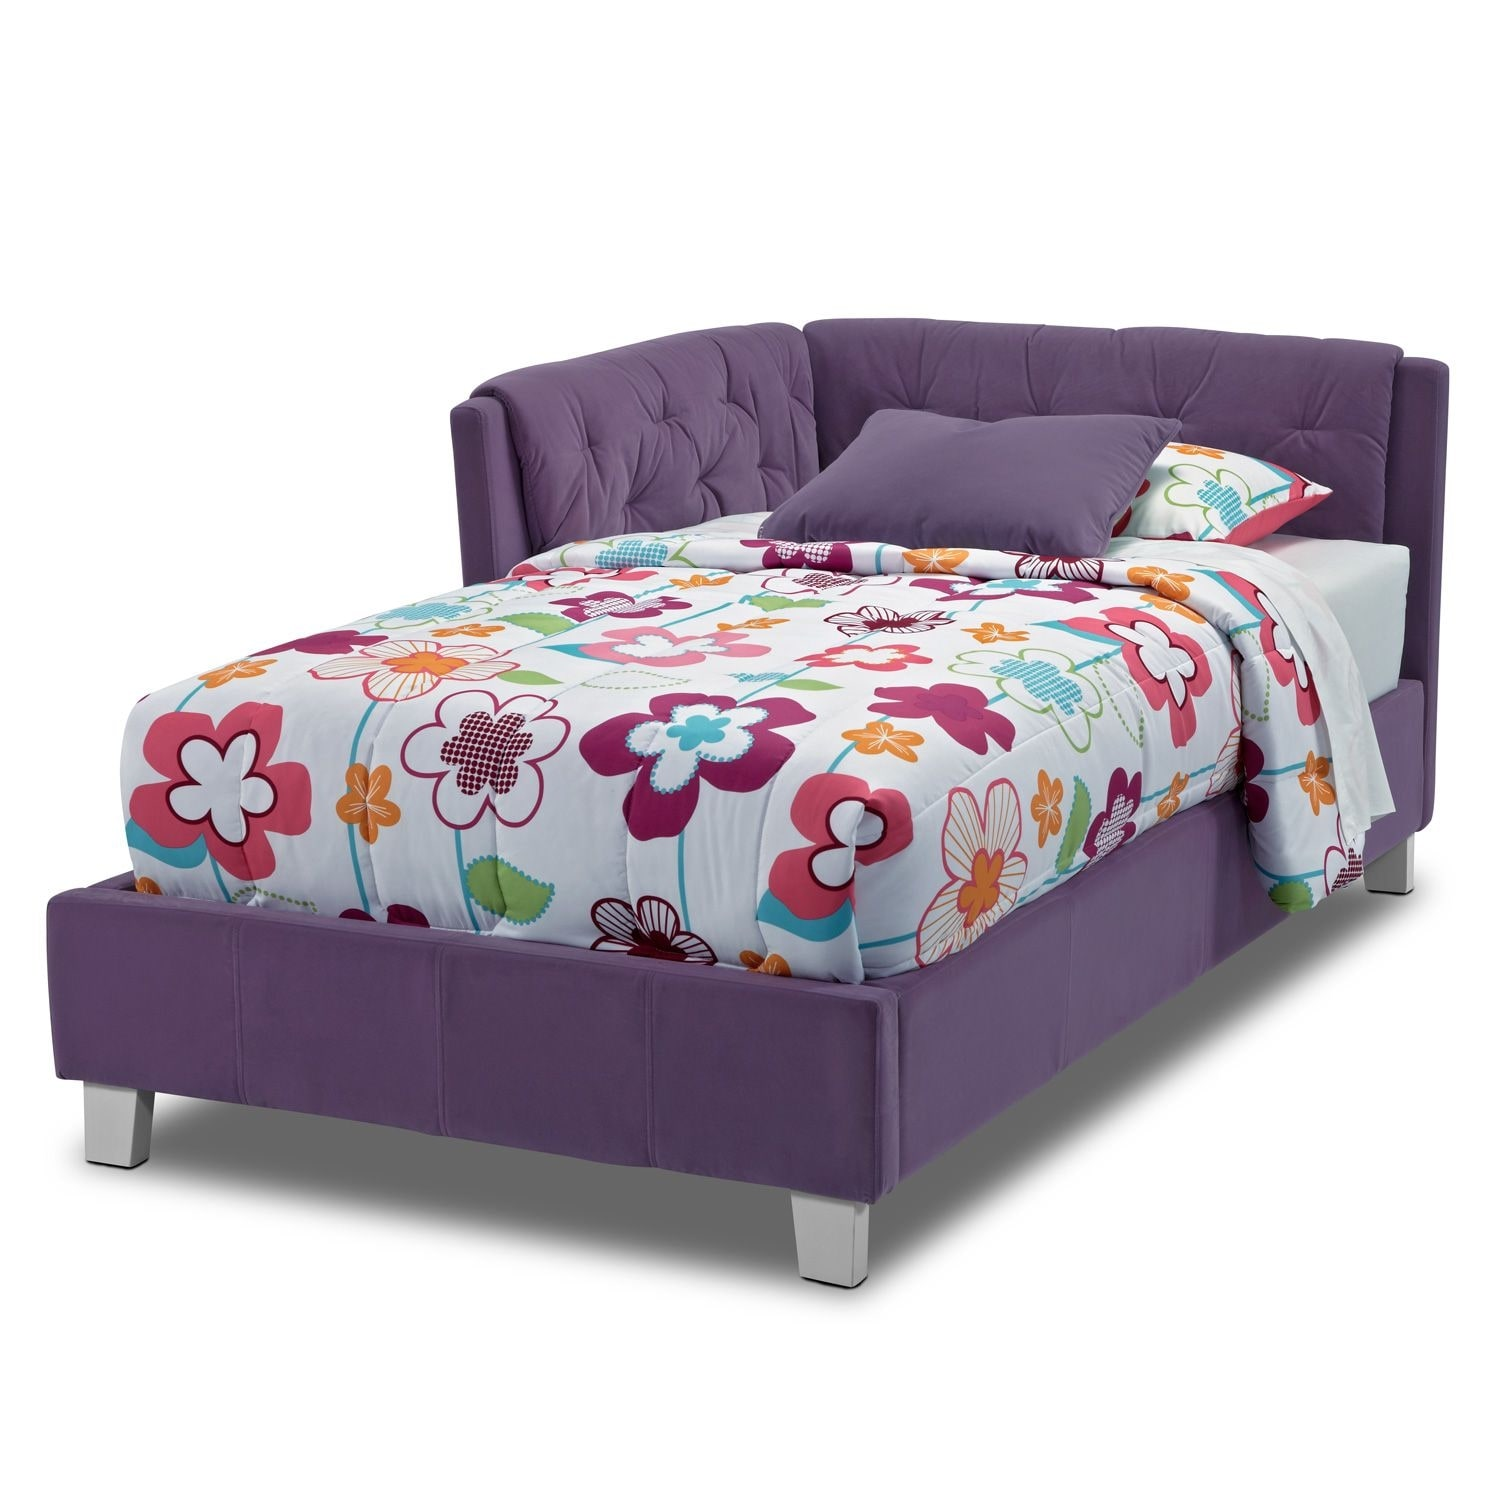 dp teen comforter bedding ultra purple bedroom com zone set soft mi floral amazon bed girls sets full for size home riley queen microfiber piece